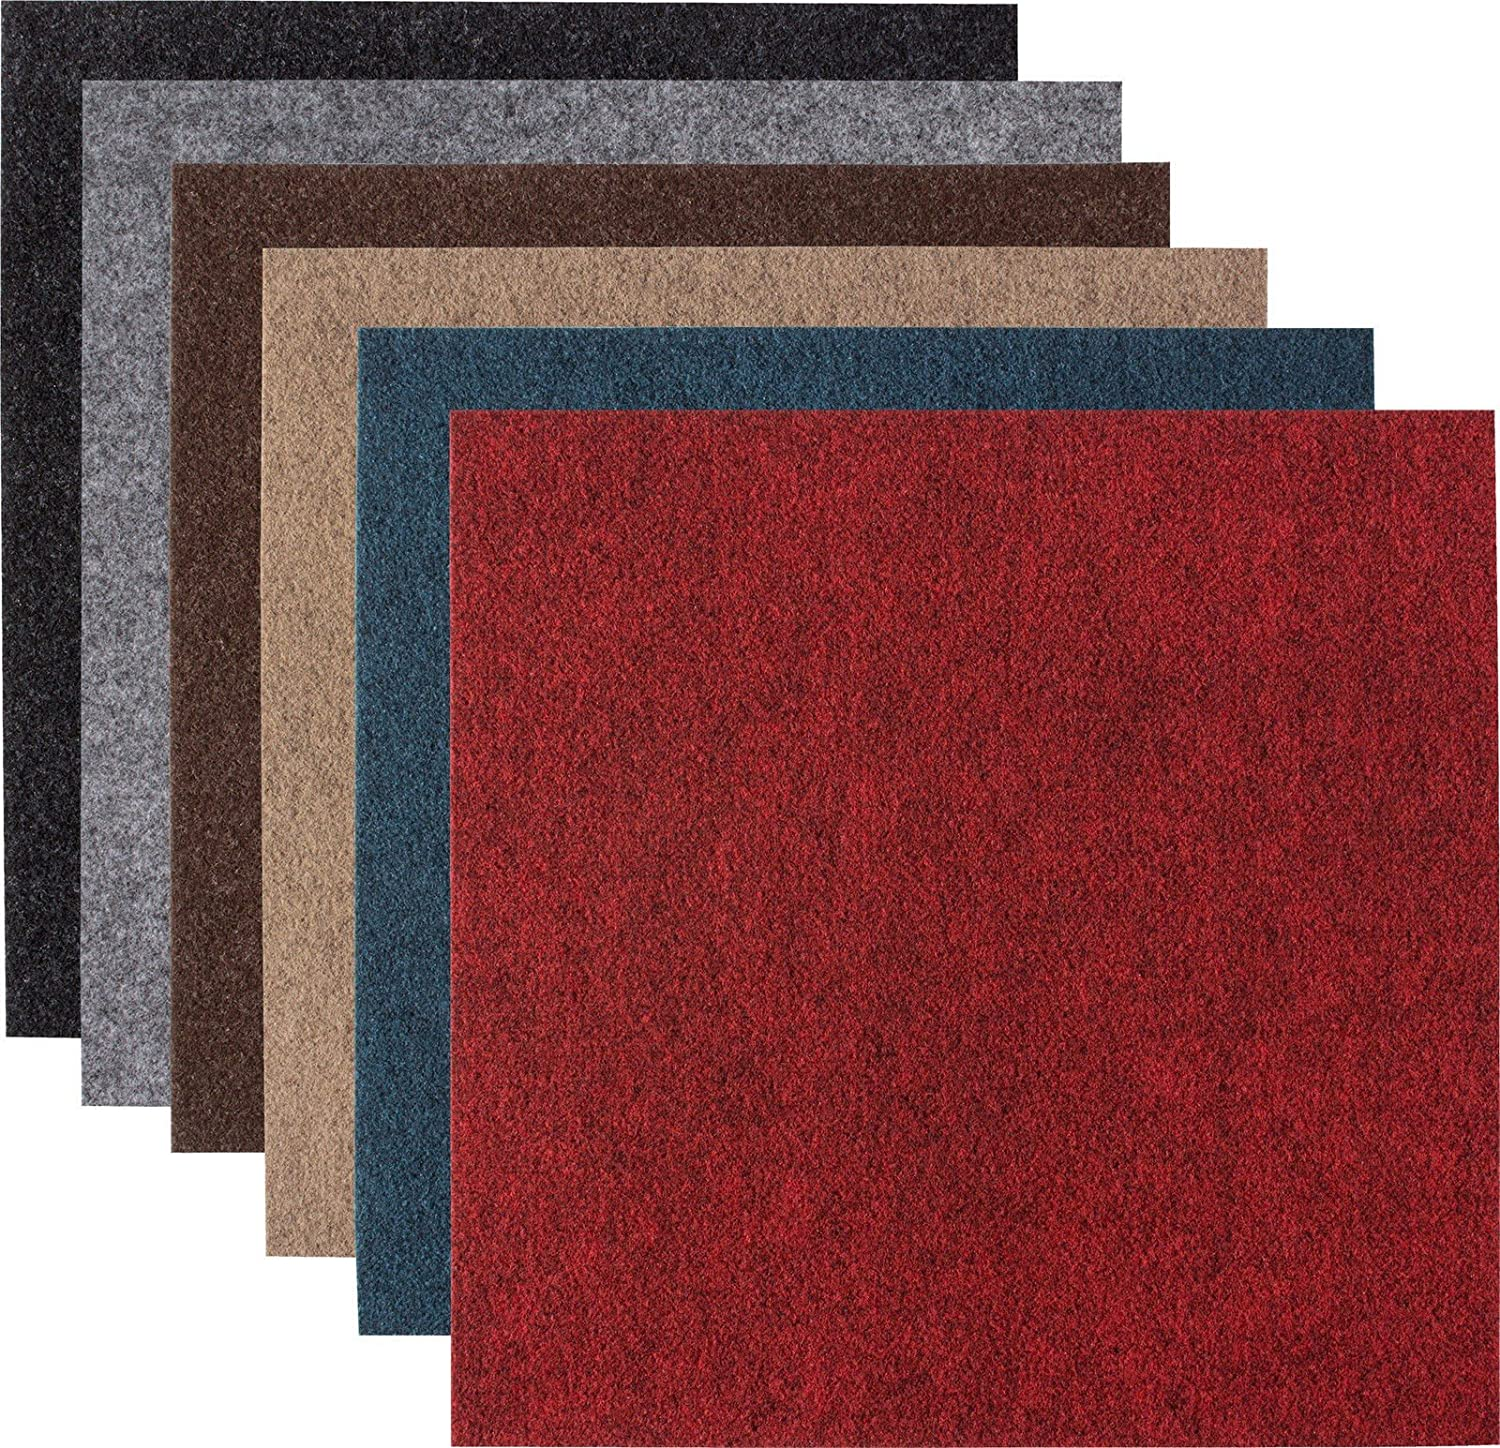 Andiamo Self-Adhesive Felt Carpet Tiles Pack (8m² ), 40x40 each,, set consists of 50 tiles=8m² , Colour:Black set consists of 50 tiles=8m²